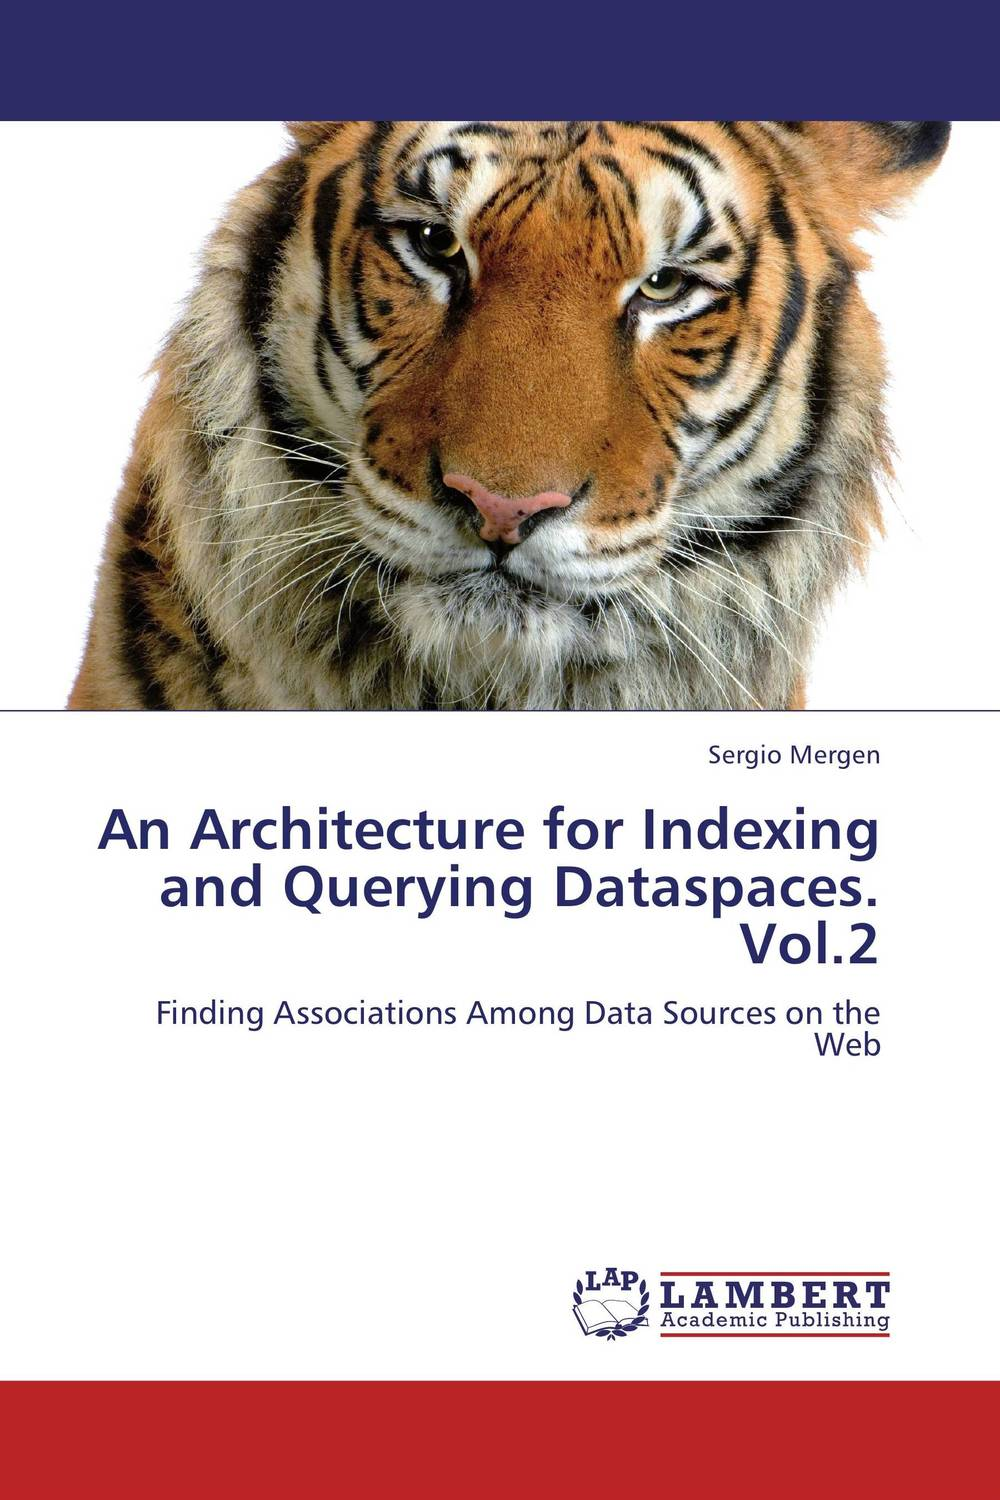 An Architecture for Indexing and Querying Dataspaces. Vol.2